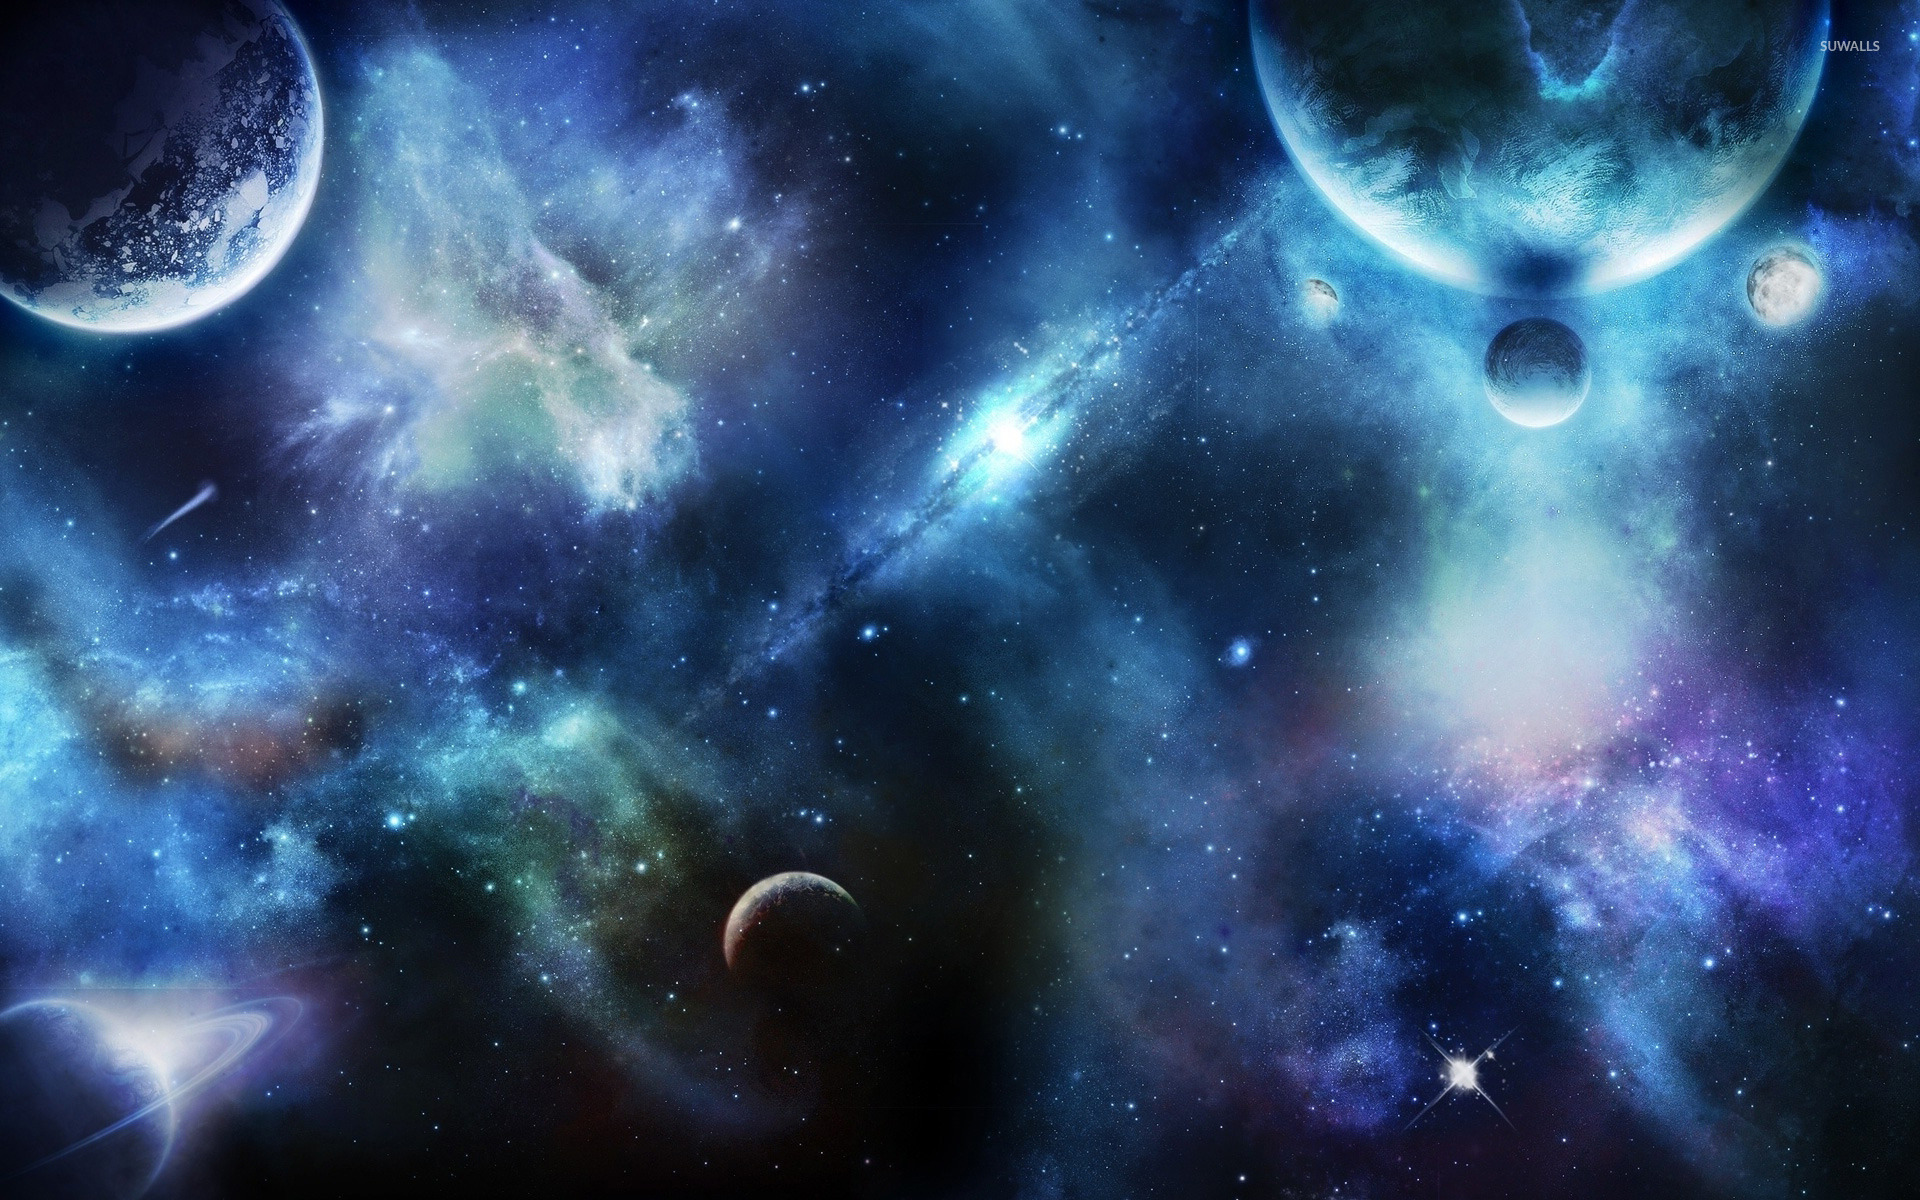 Nebula and planets [4] wallpaper - Fantasy wallpapers - #13240